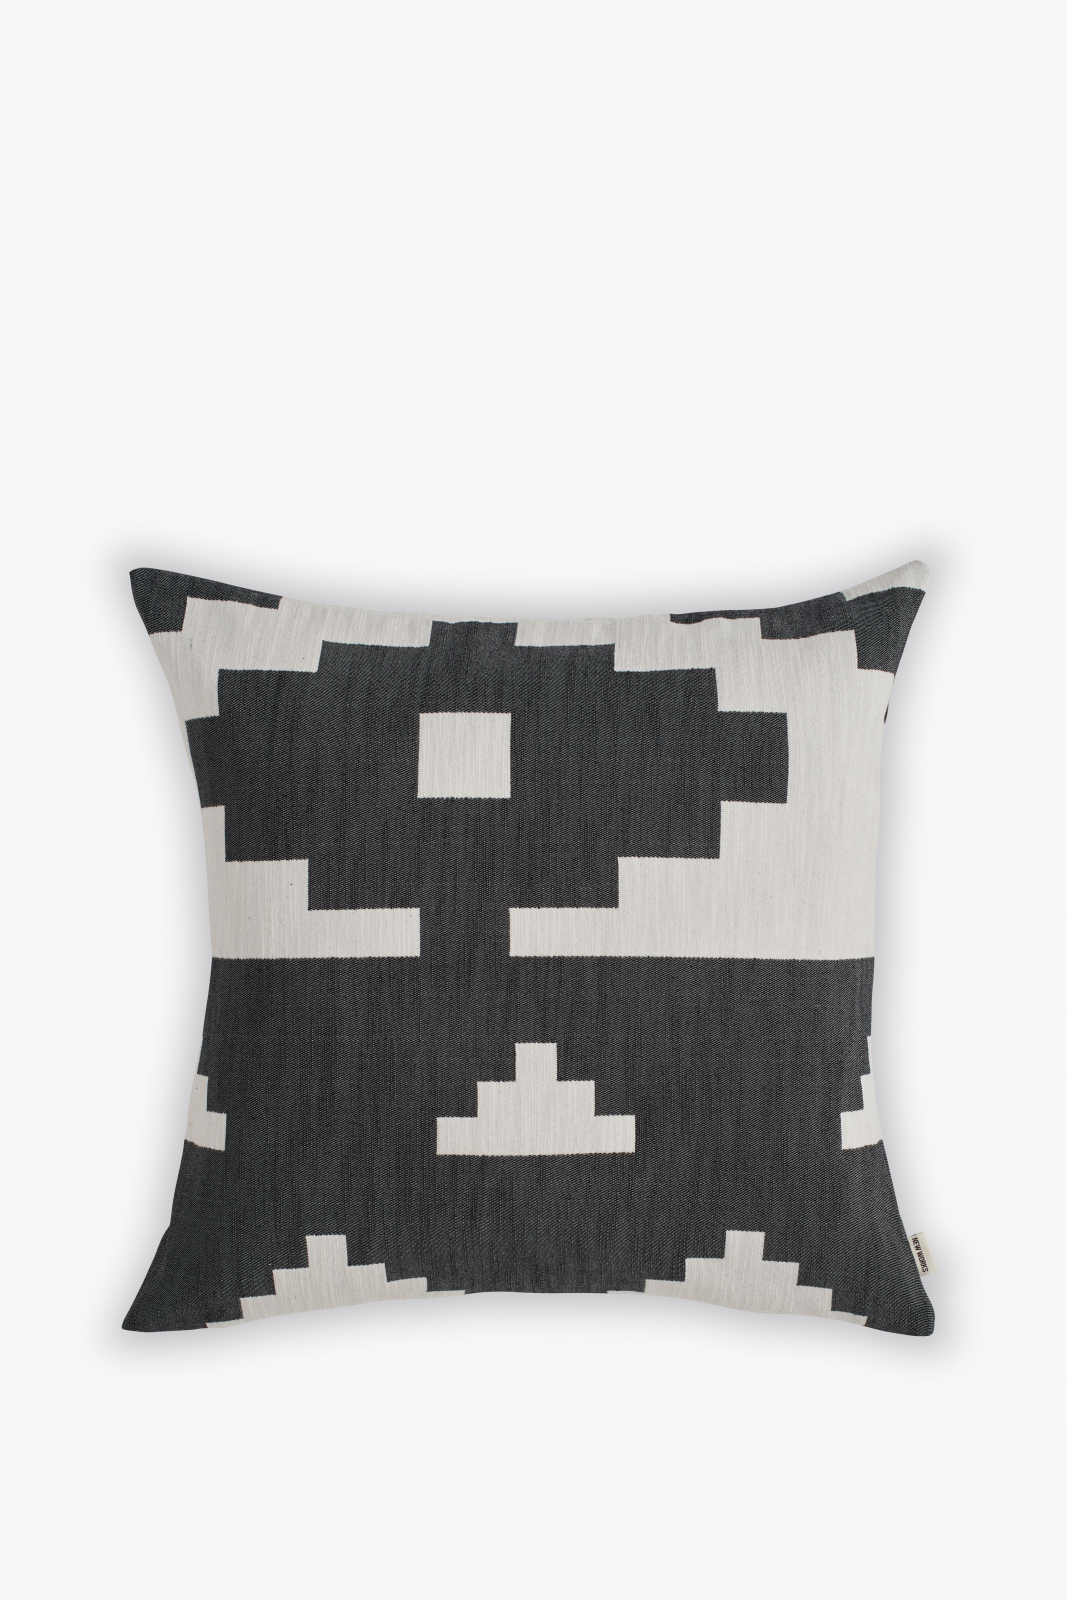 Ikat Square Cushion Black